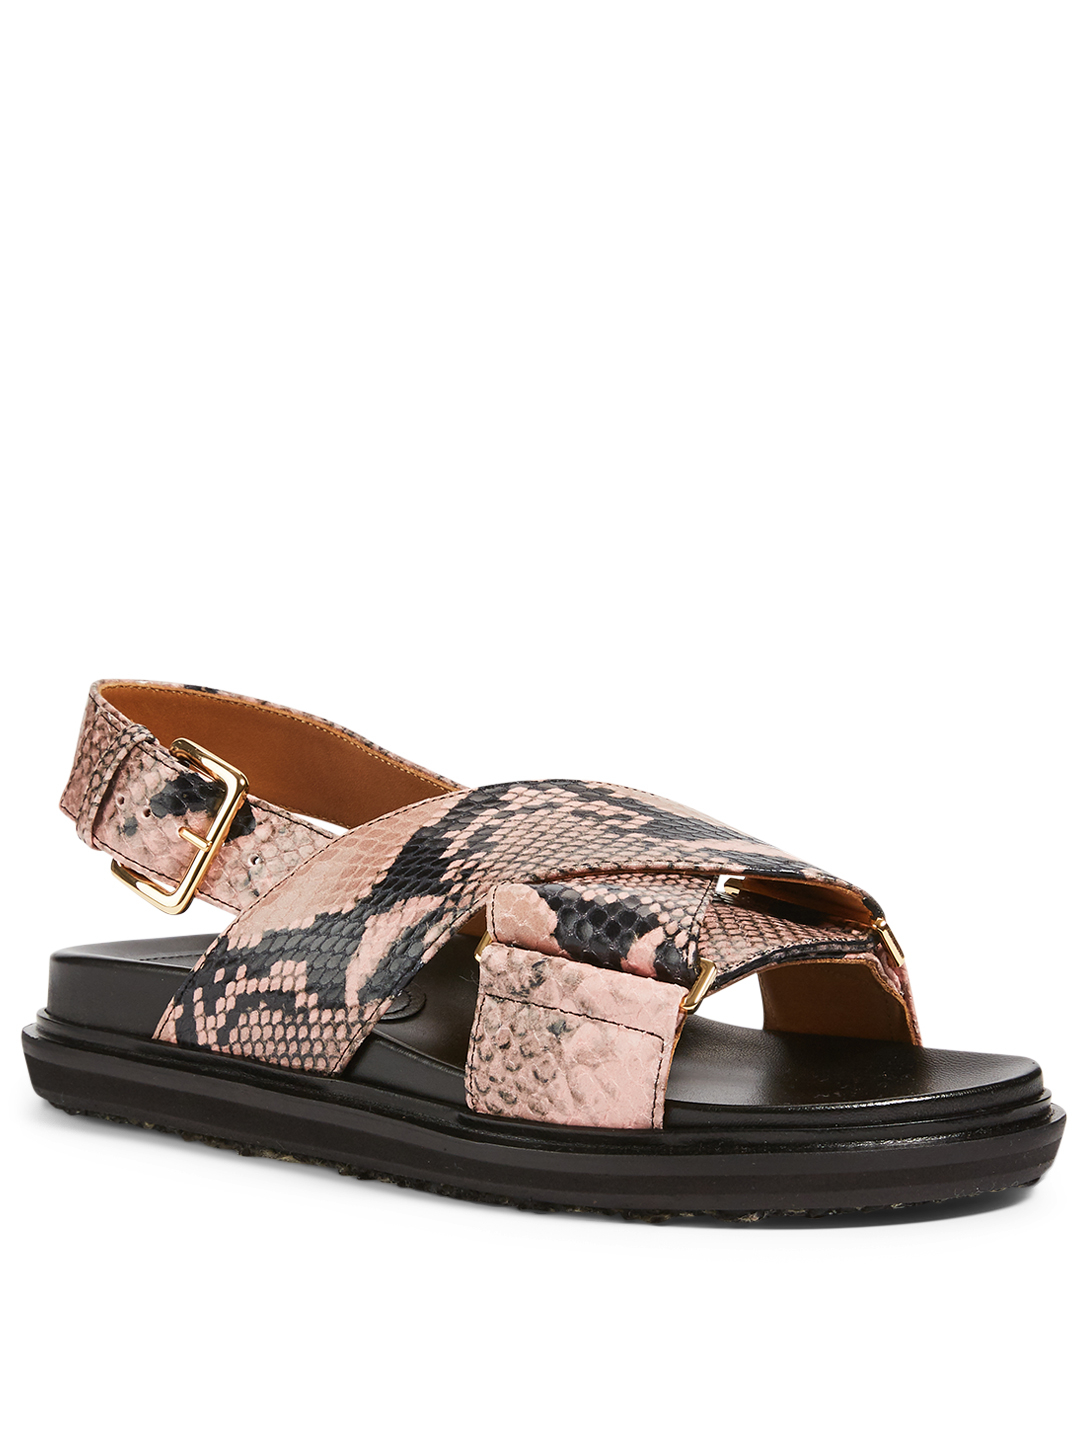 MARNI Fussbett Snake-Embossed Leather Slingback Sandals Women's Pink